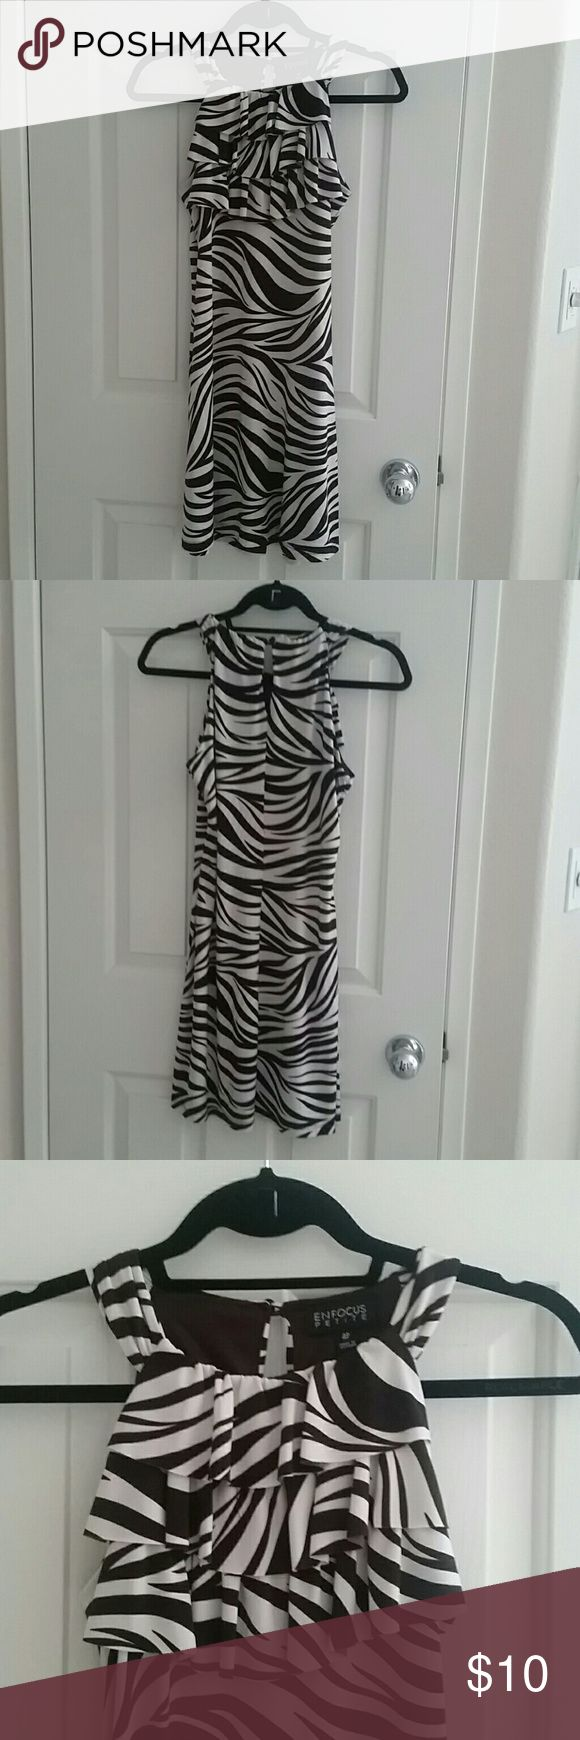 """Zebra print dress Cute every day dress Brown and white zebra print Chest features cascading layers Button closure at back neckline  No zipper, pull over Size 4 petite Flat Bust measurement 17"""" Enfocus Dresses Mini"""